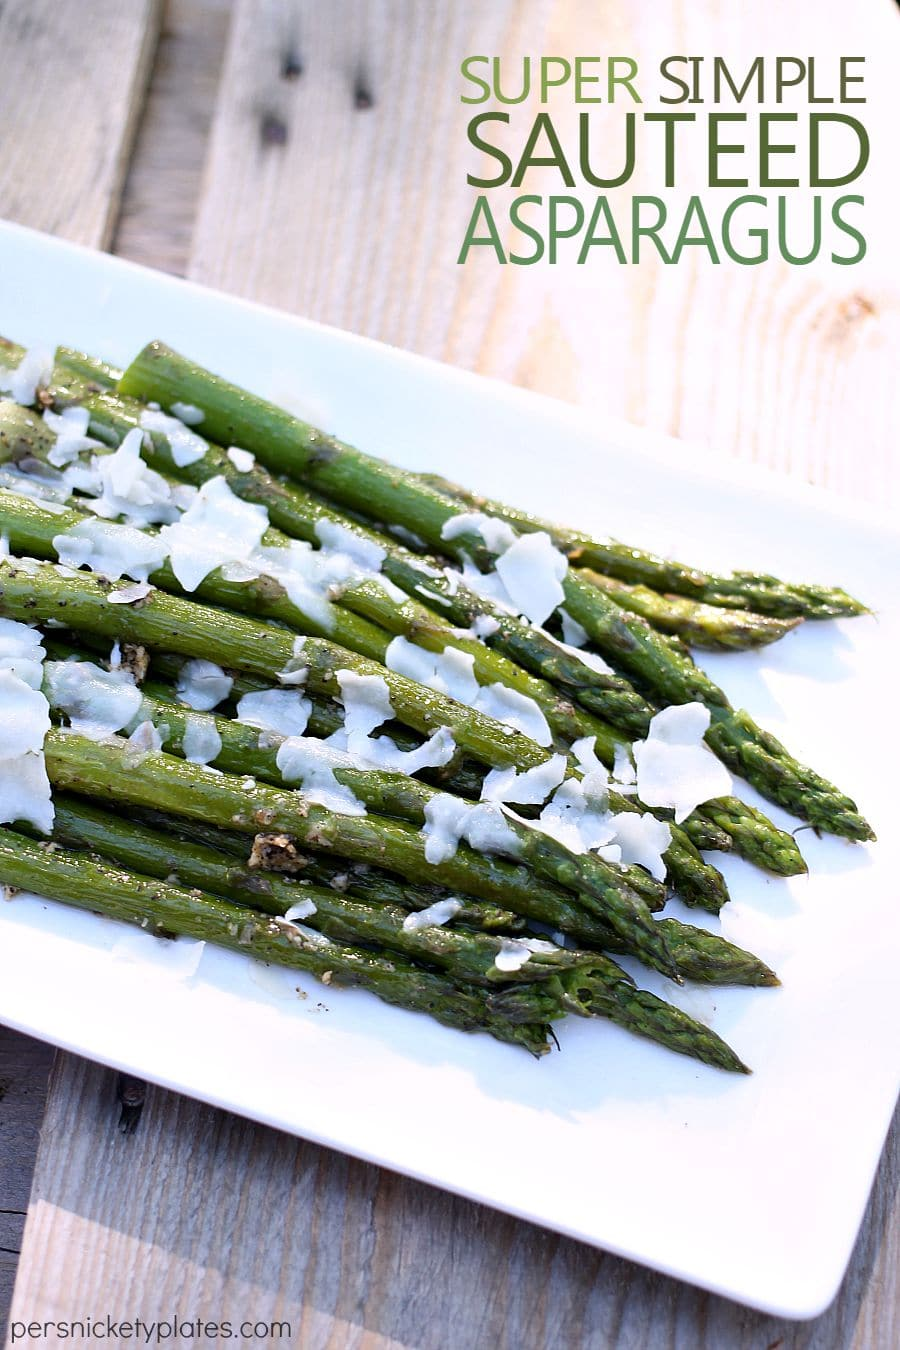 Super simple sauteed asparagus that's full of flavor and can be on the table in 15 minutes.